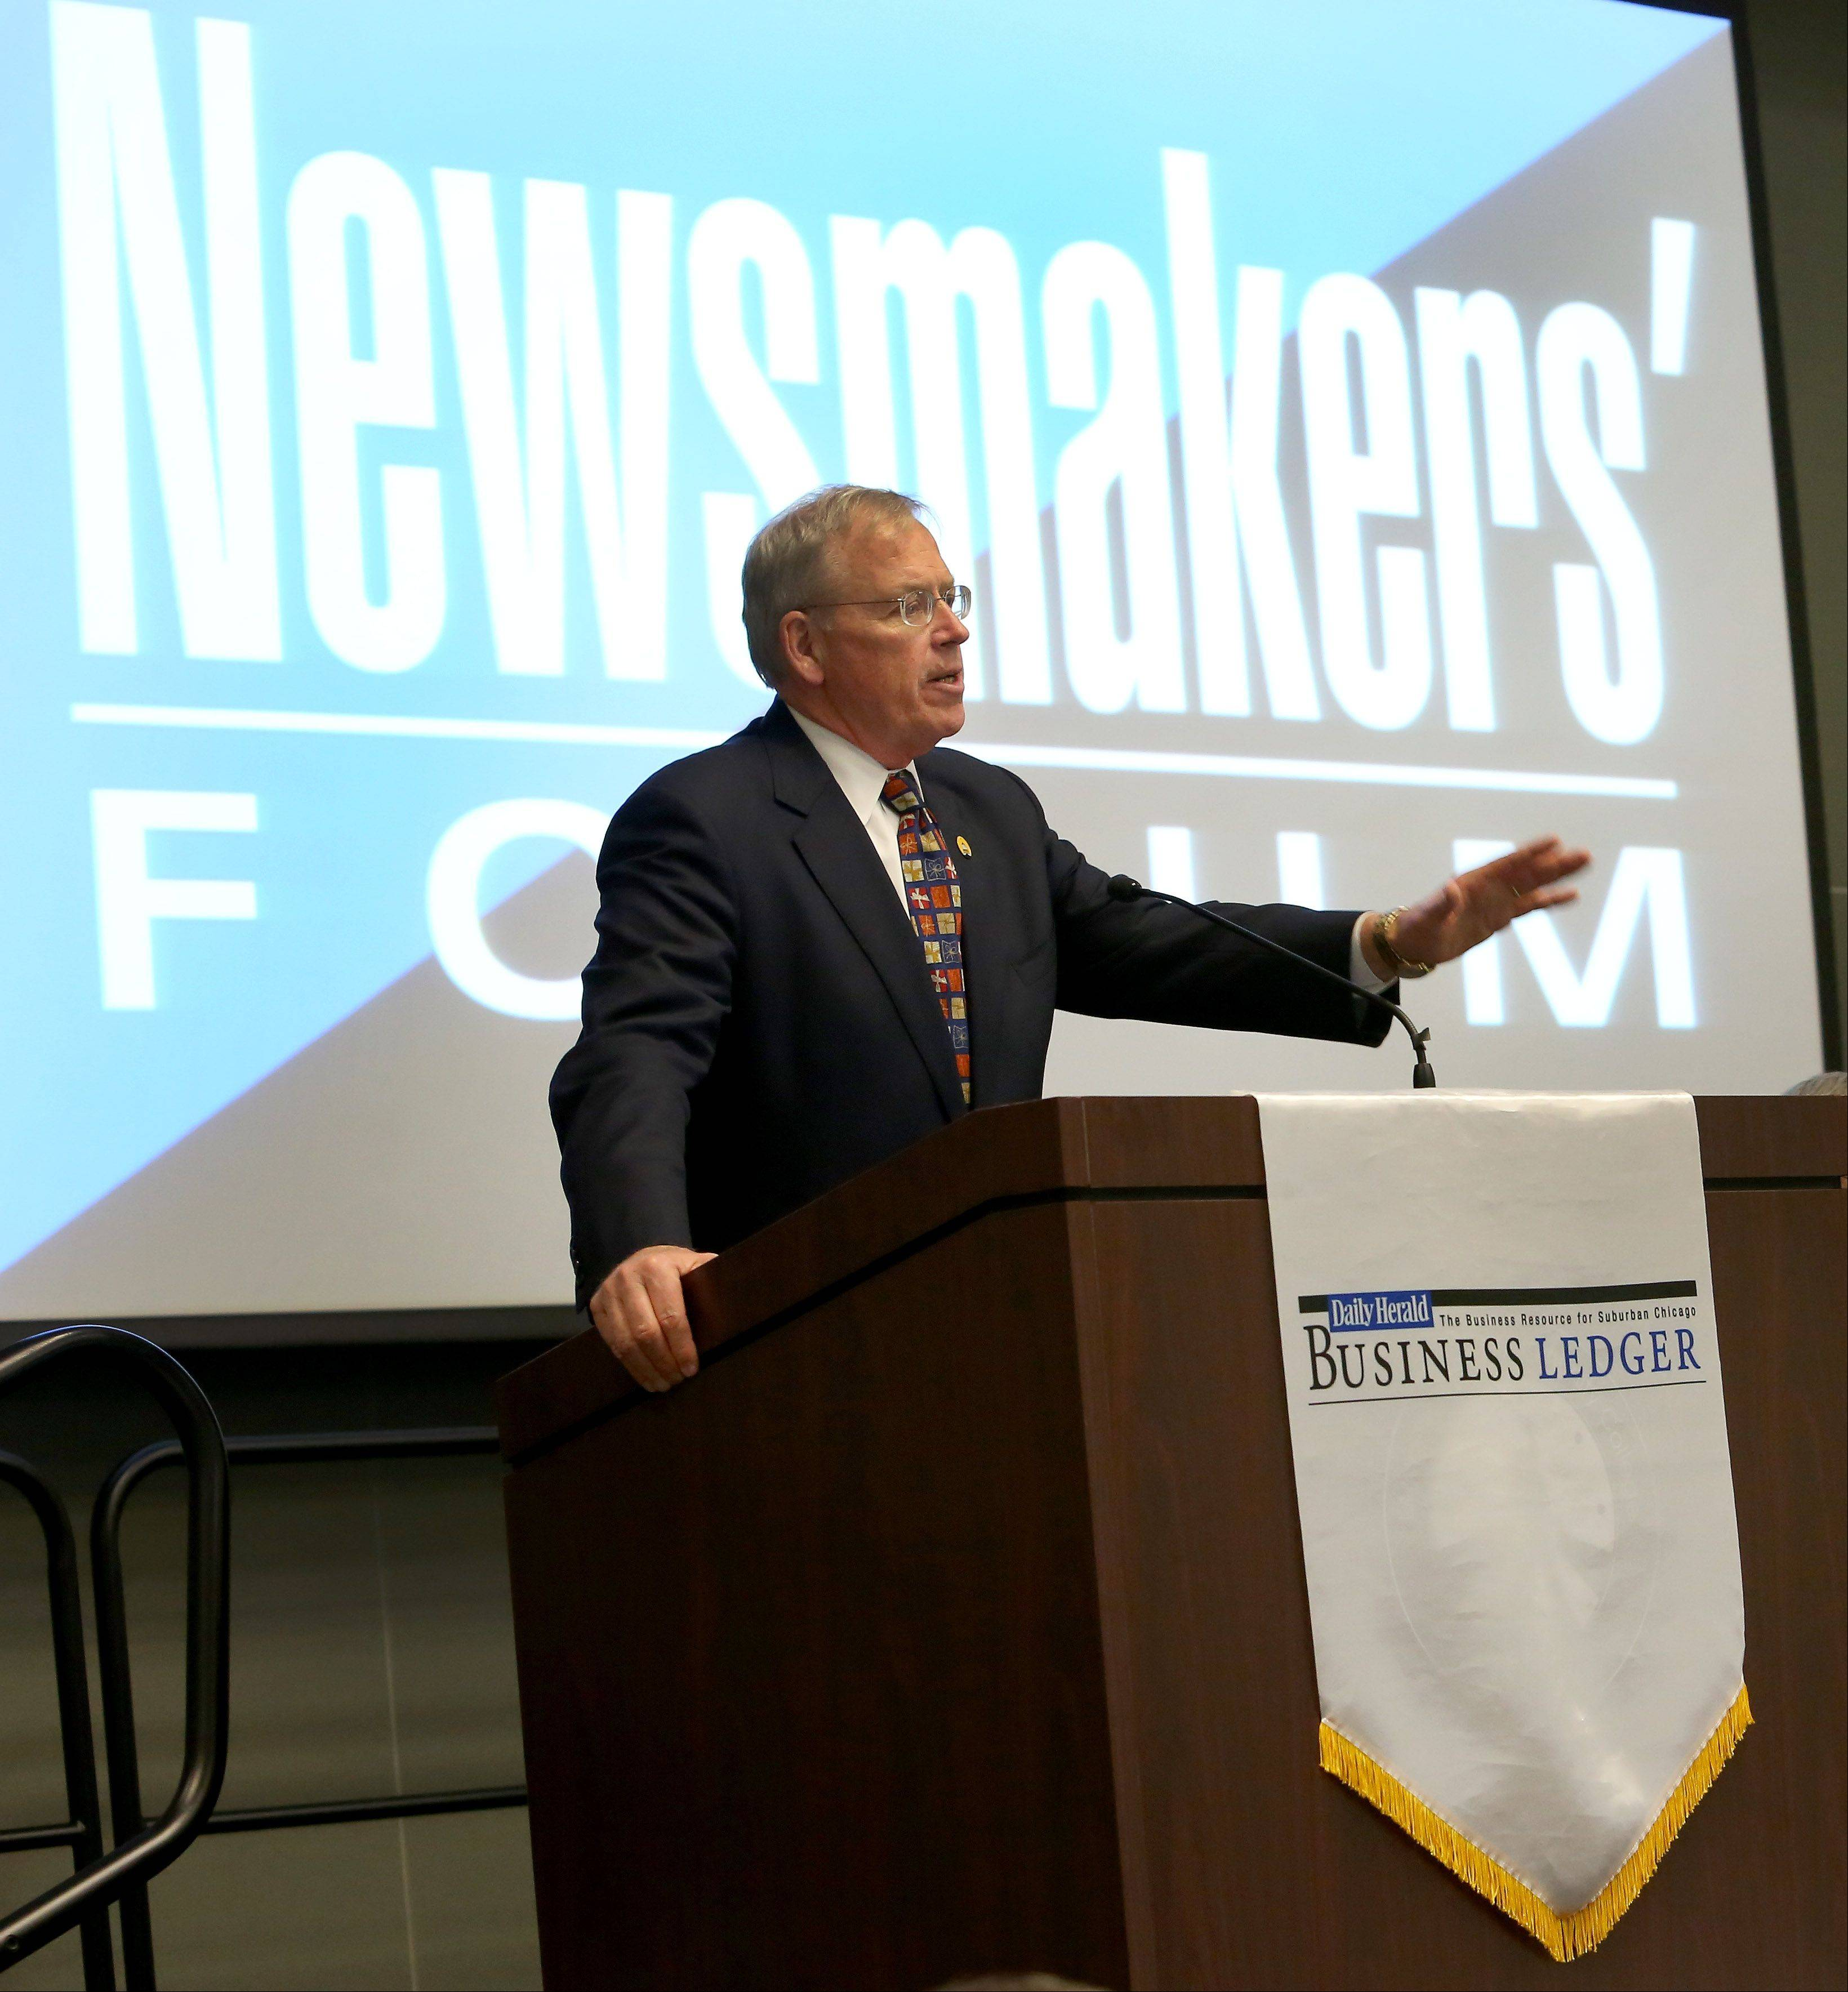 Douglas Whitley, president and CEO of the Illinois Chamber of Commerce, speaks at the Newsmakers� Forum at the Moraine Valley Community College in Palos Hills.